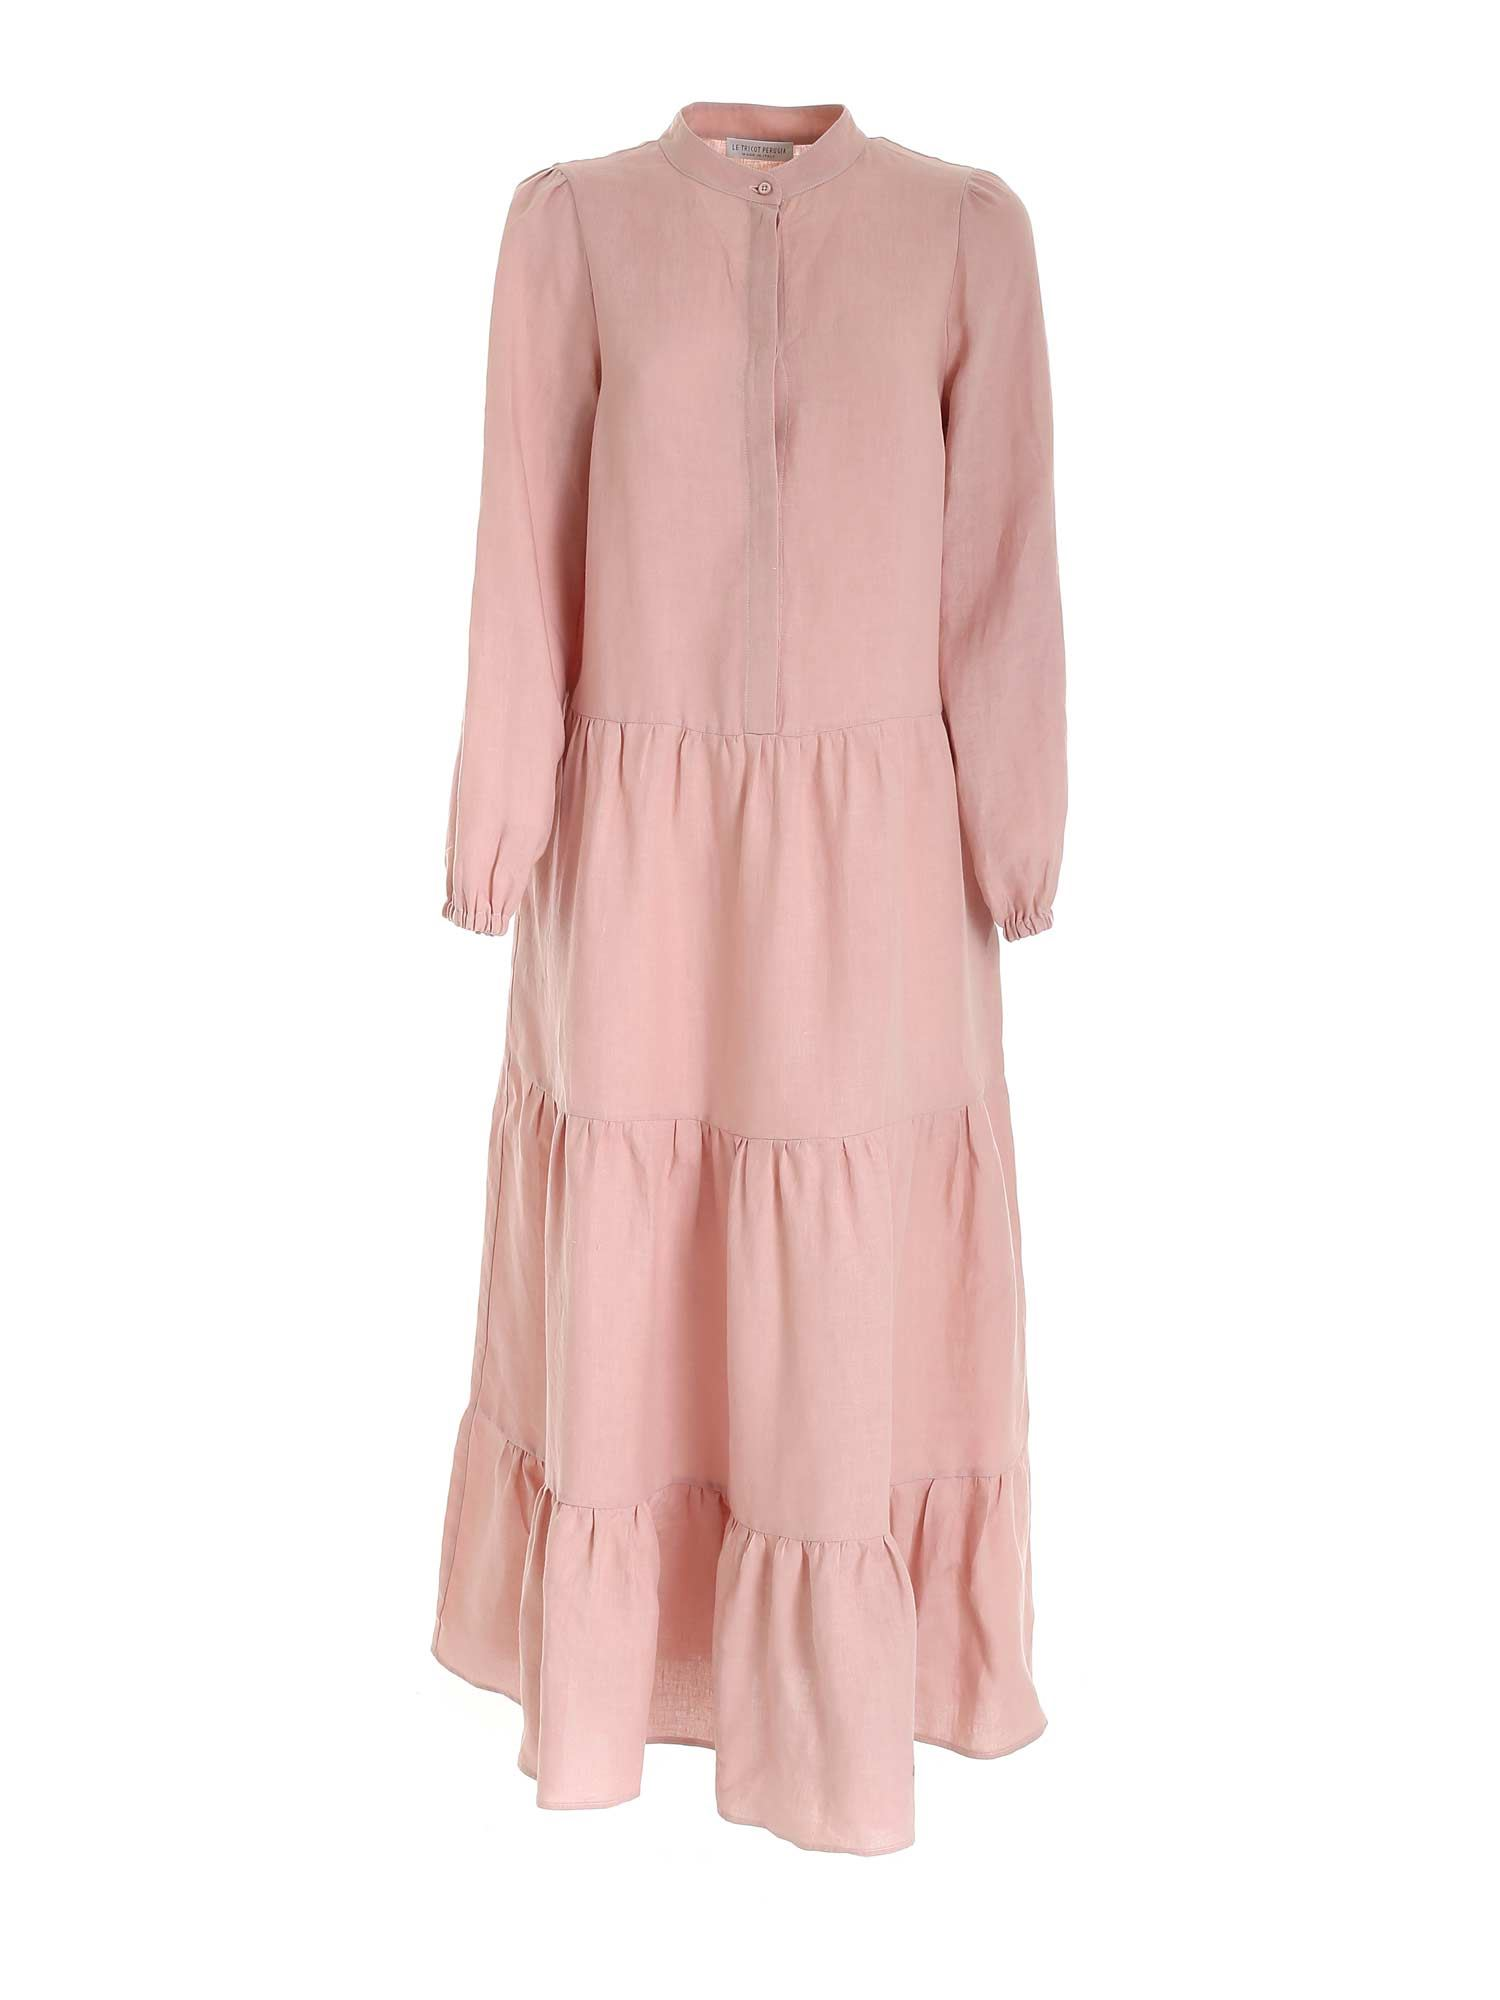 Le Tricot Perugia CURLED LONG DRESS IN PINK